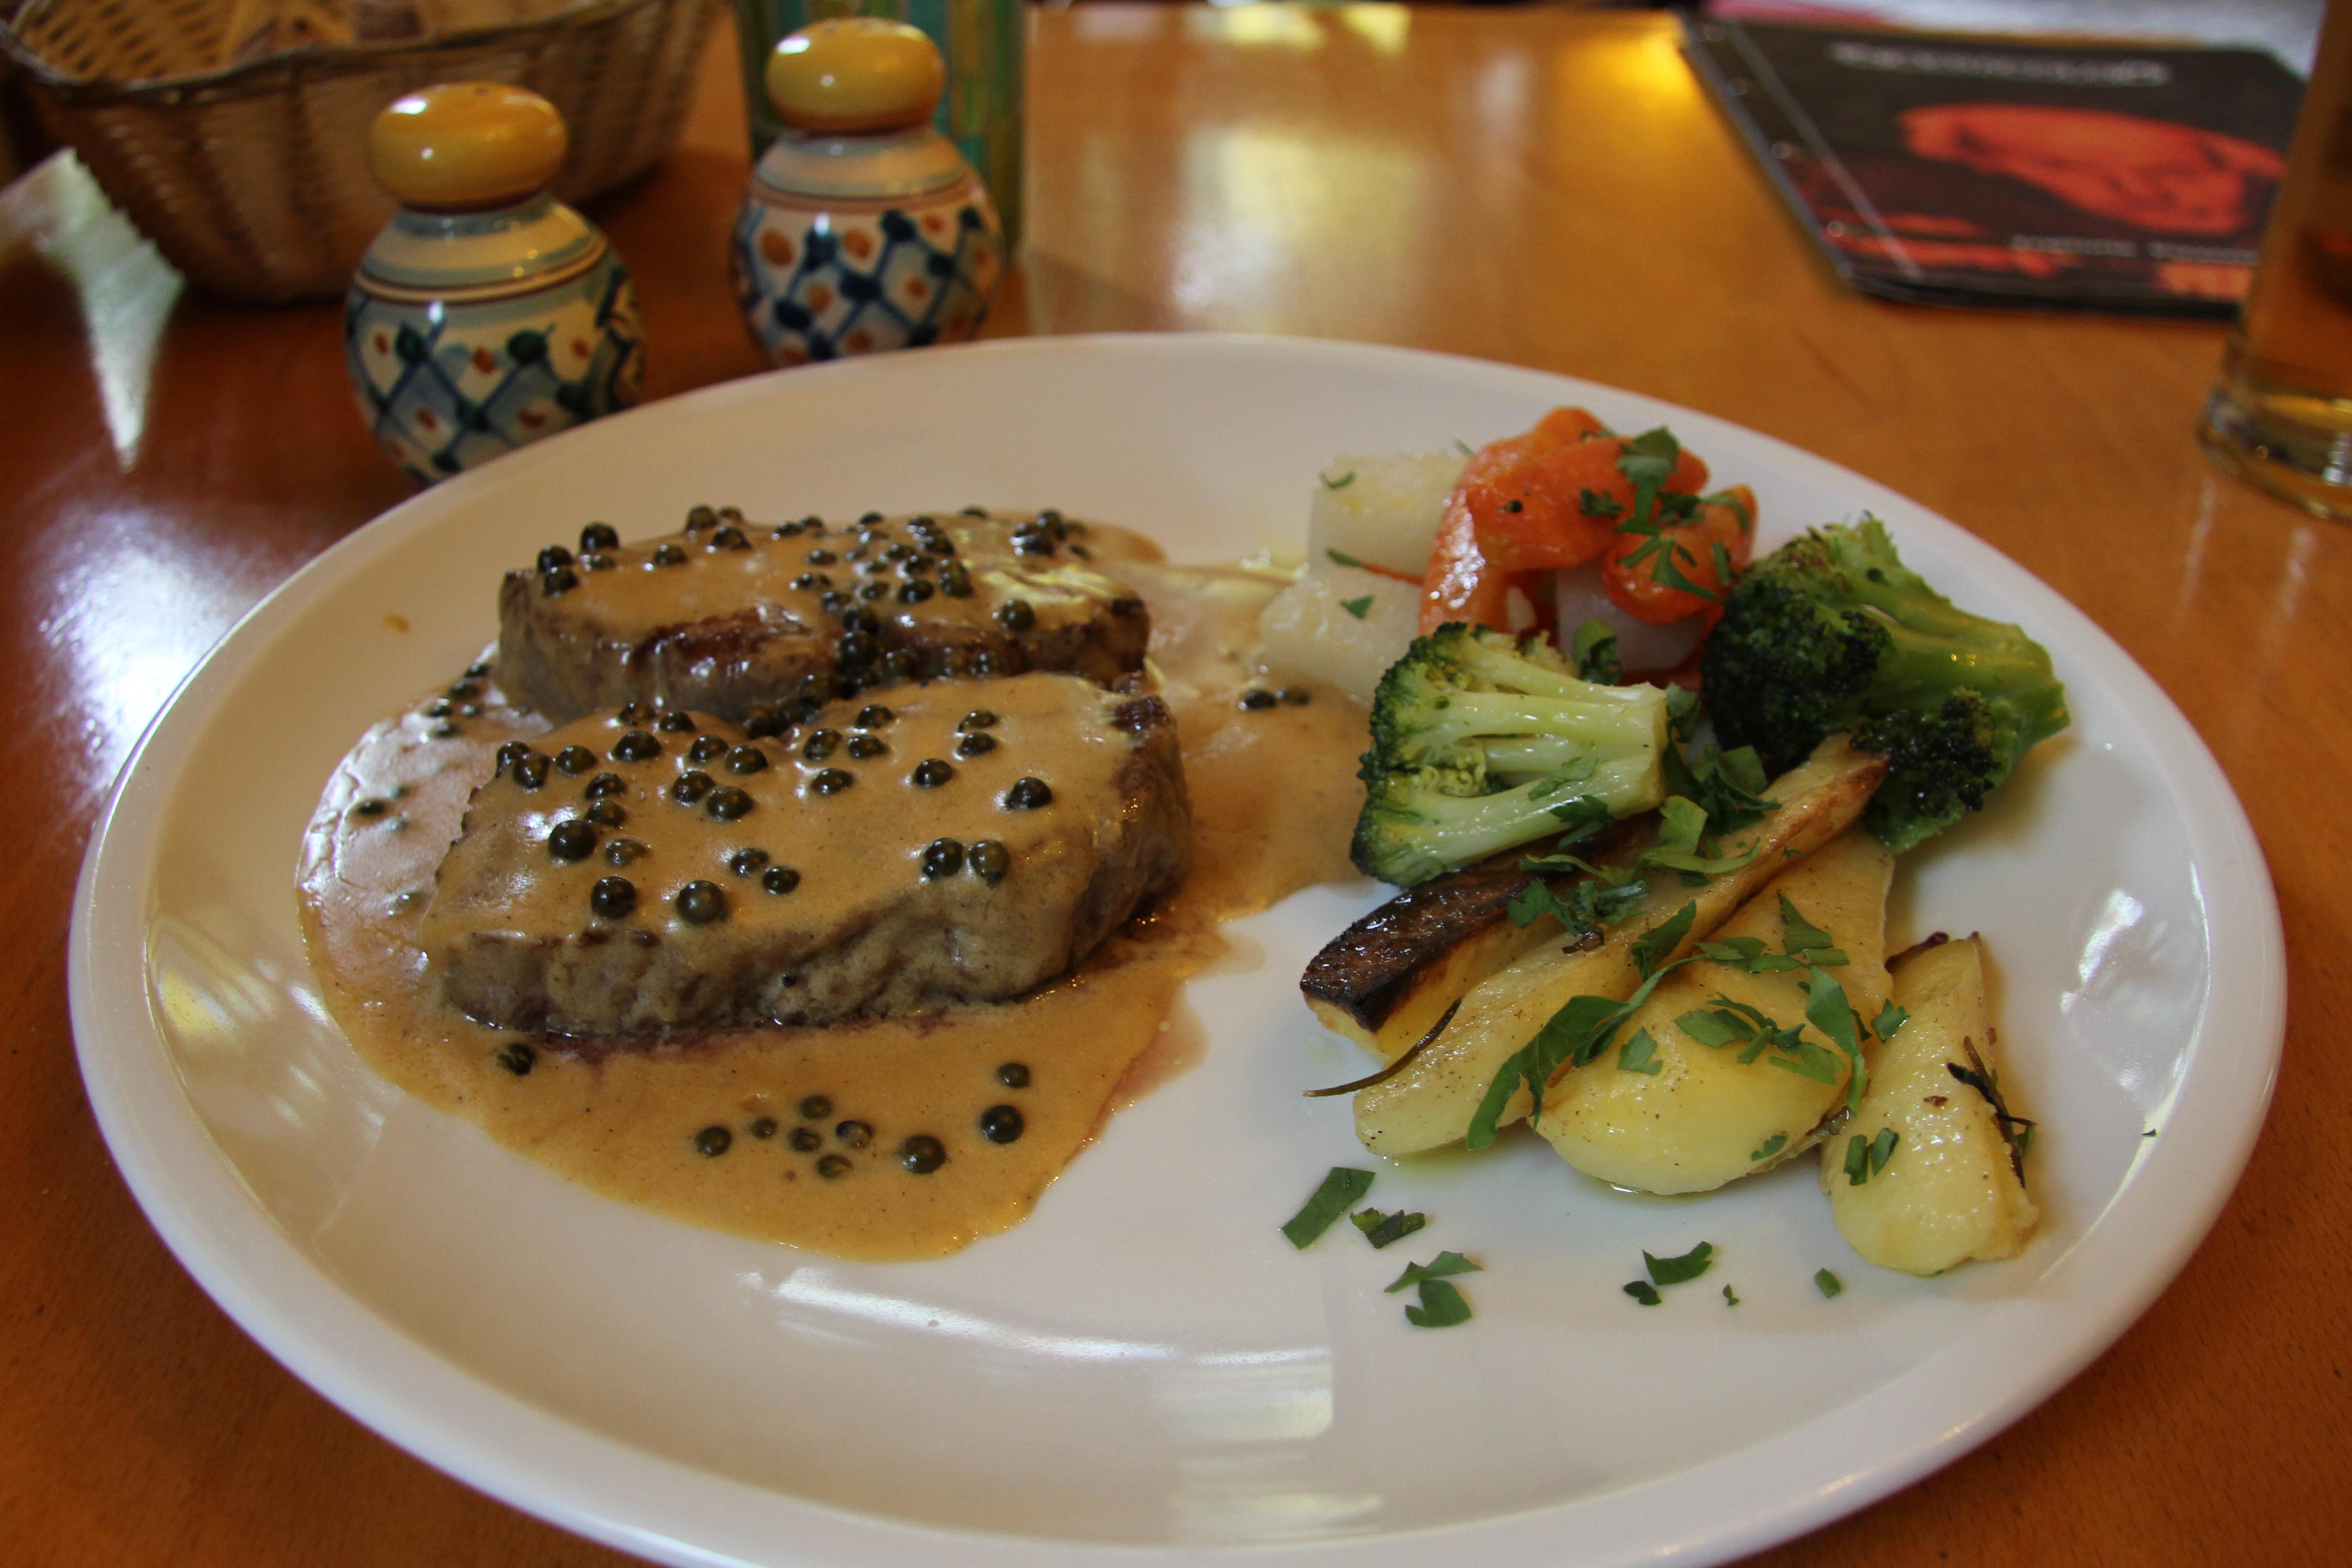 Filetto Al Pepe Verde (Fillet Steak in green peppercorn sauce) at Cenacolo, an Italian restaurant in Prenzlauer Berg in Berlin